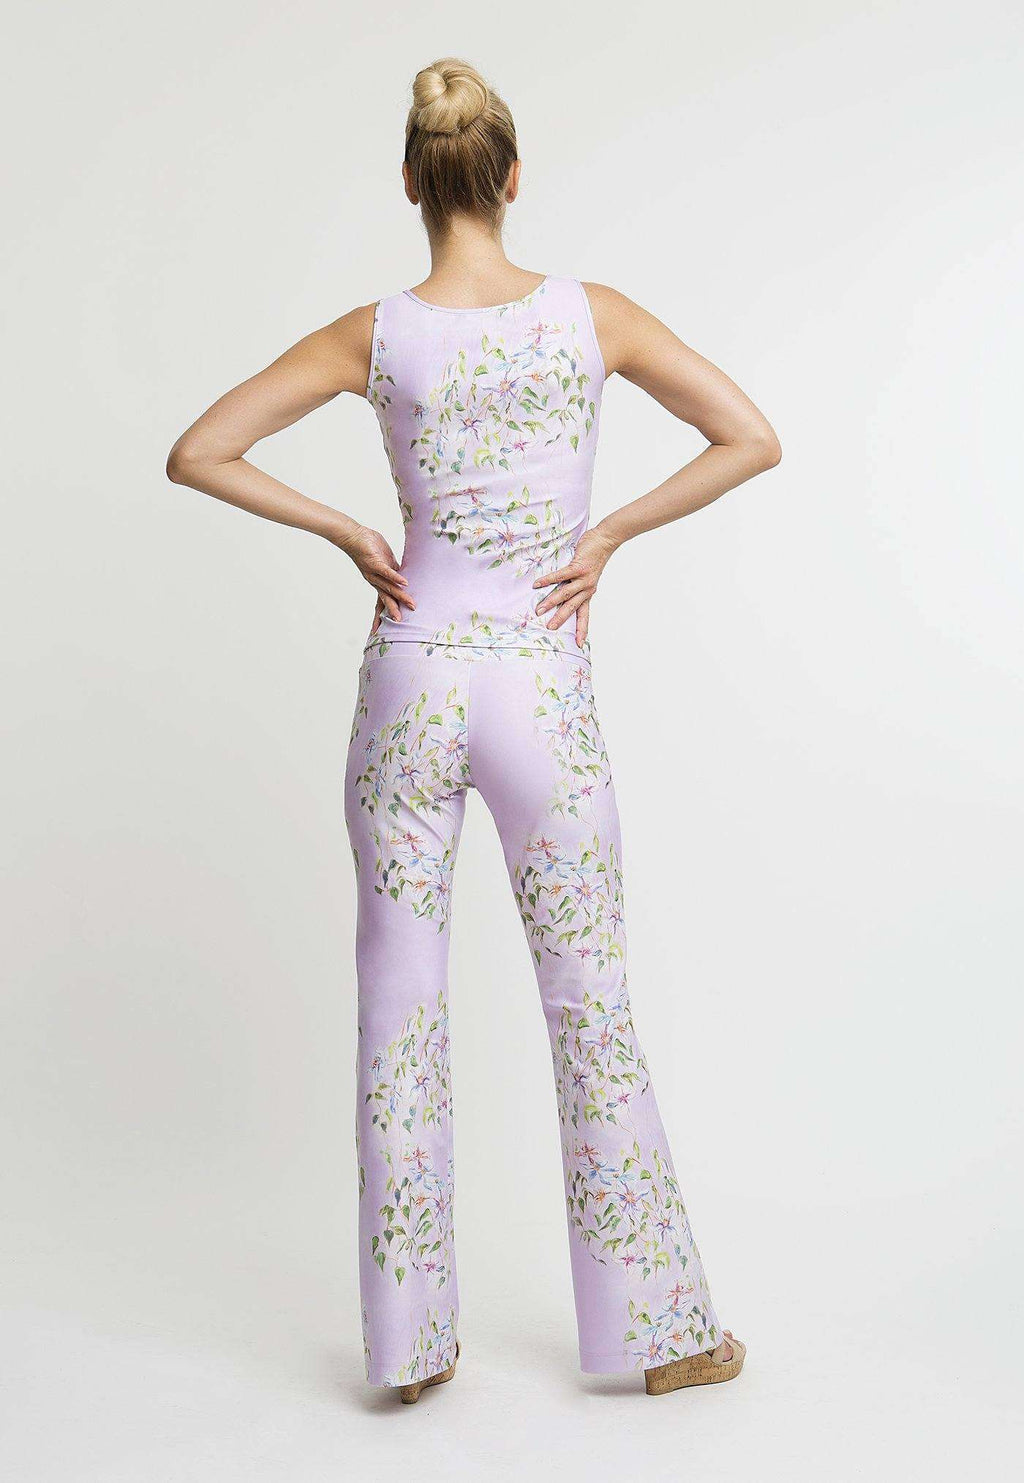 Agnes Tank Top in Sagaponack with matching pants back view